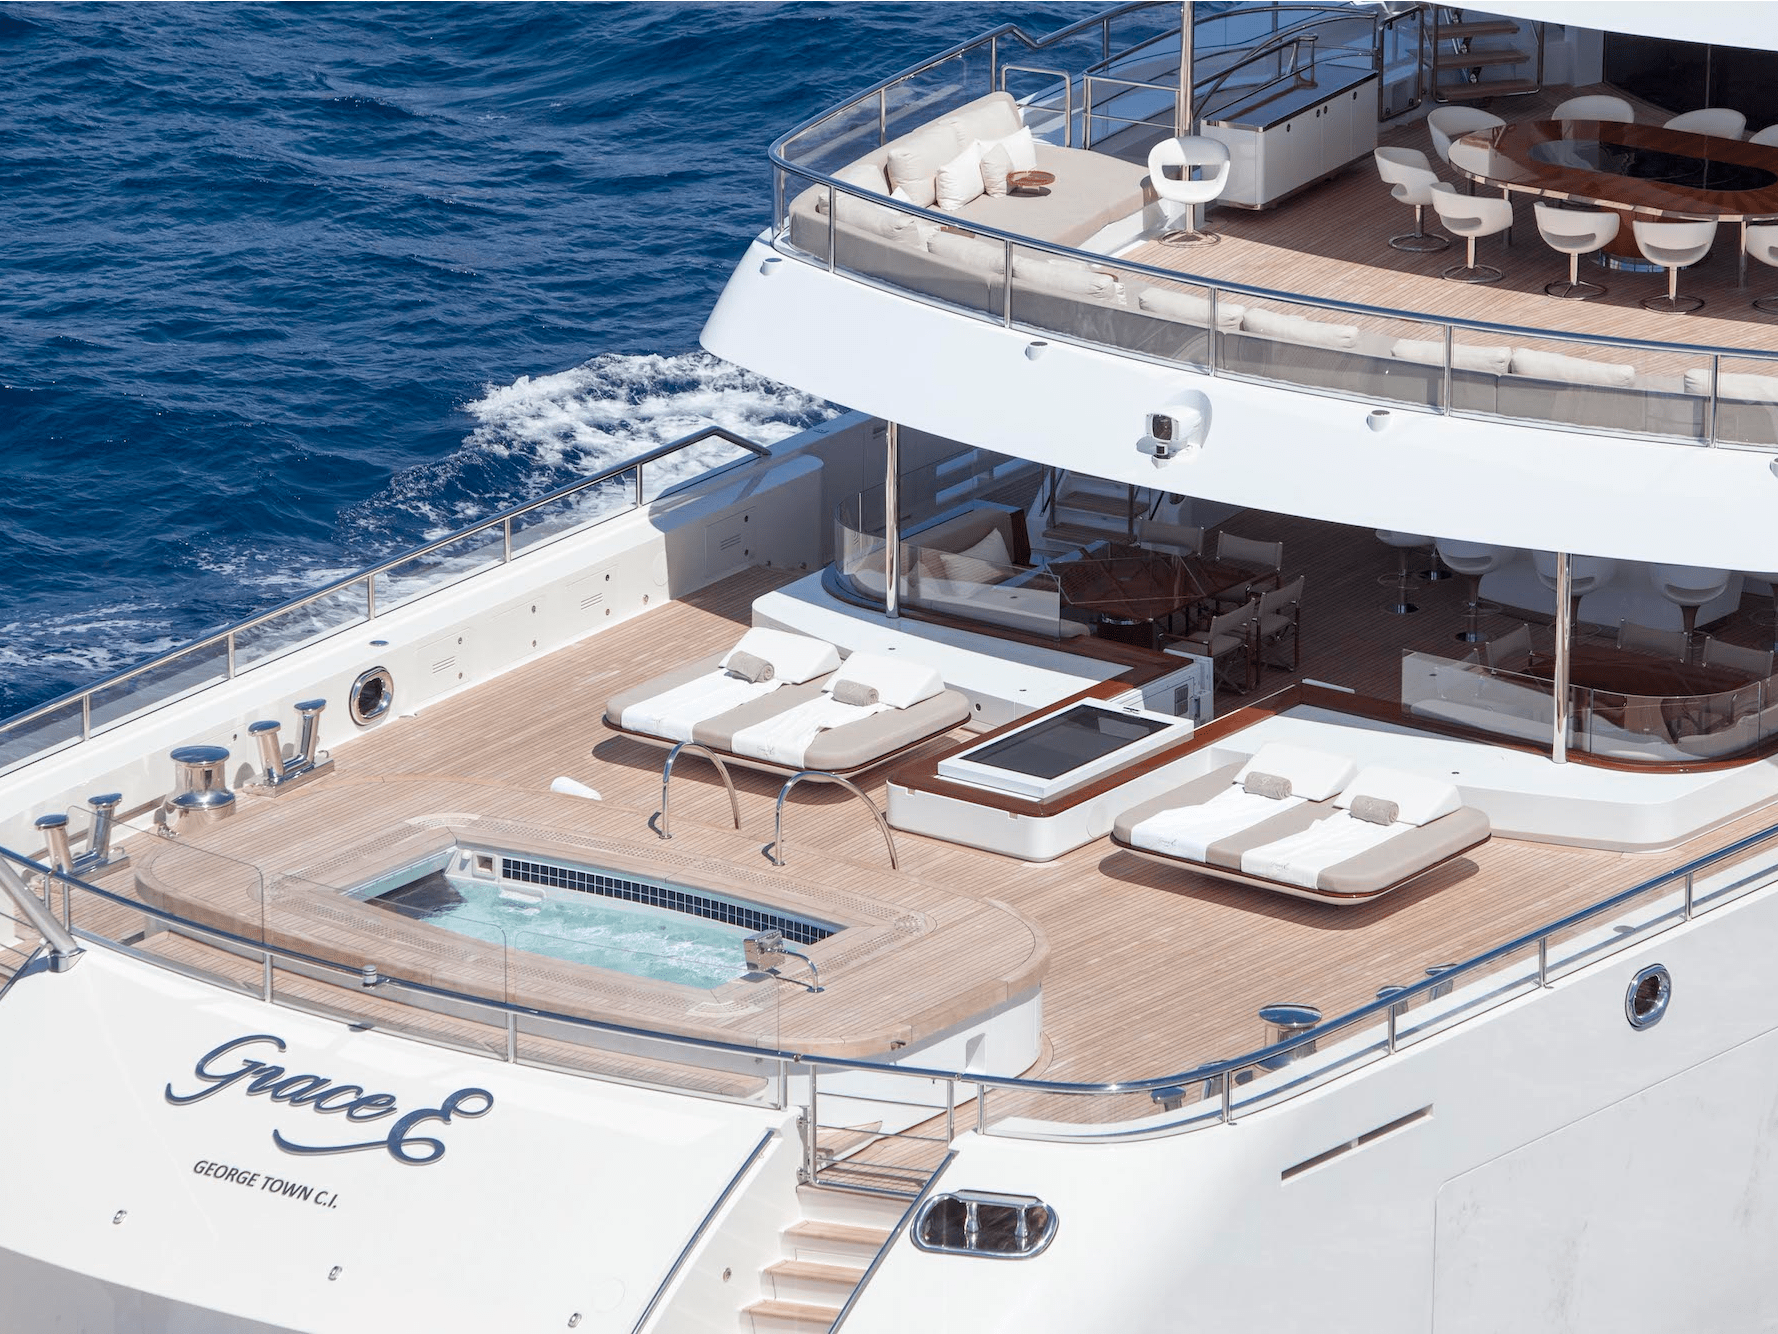 Inside Luxury Yachts Luxury Yachts At Miami Yacht Show 2018 Photos Details